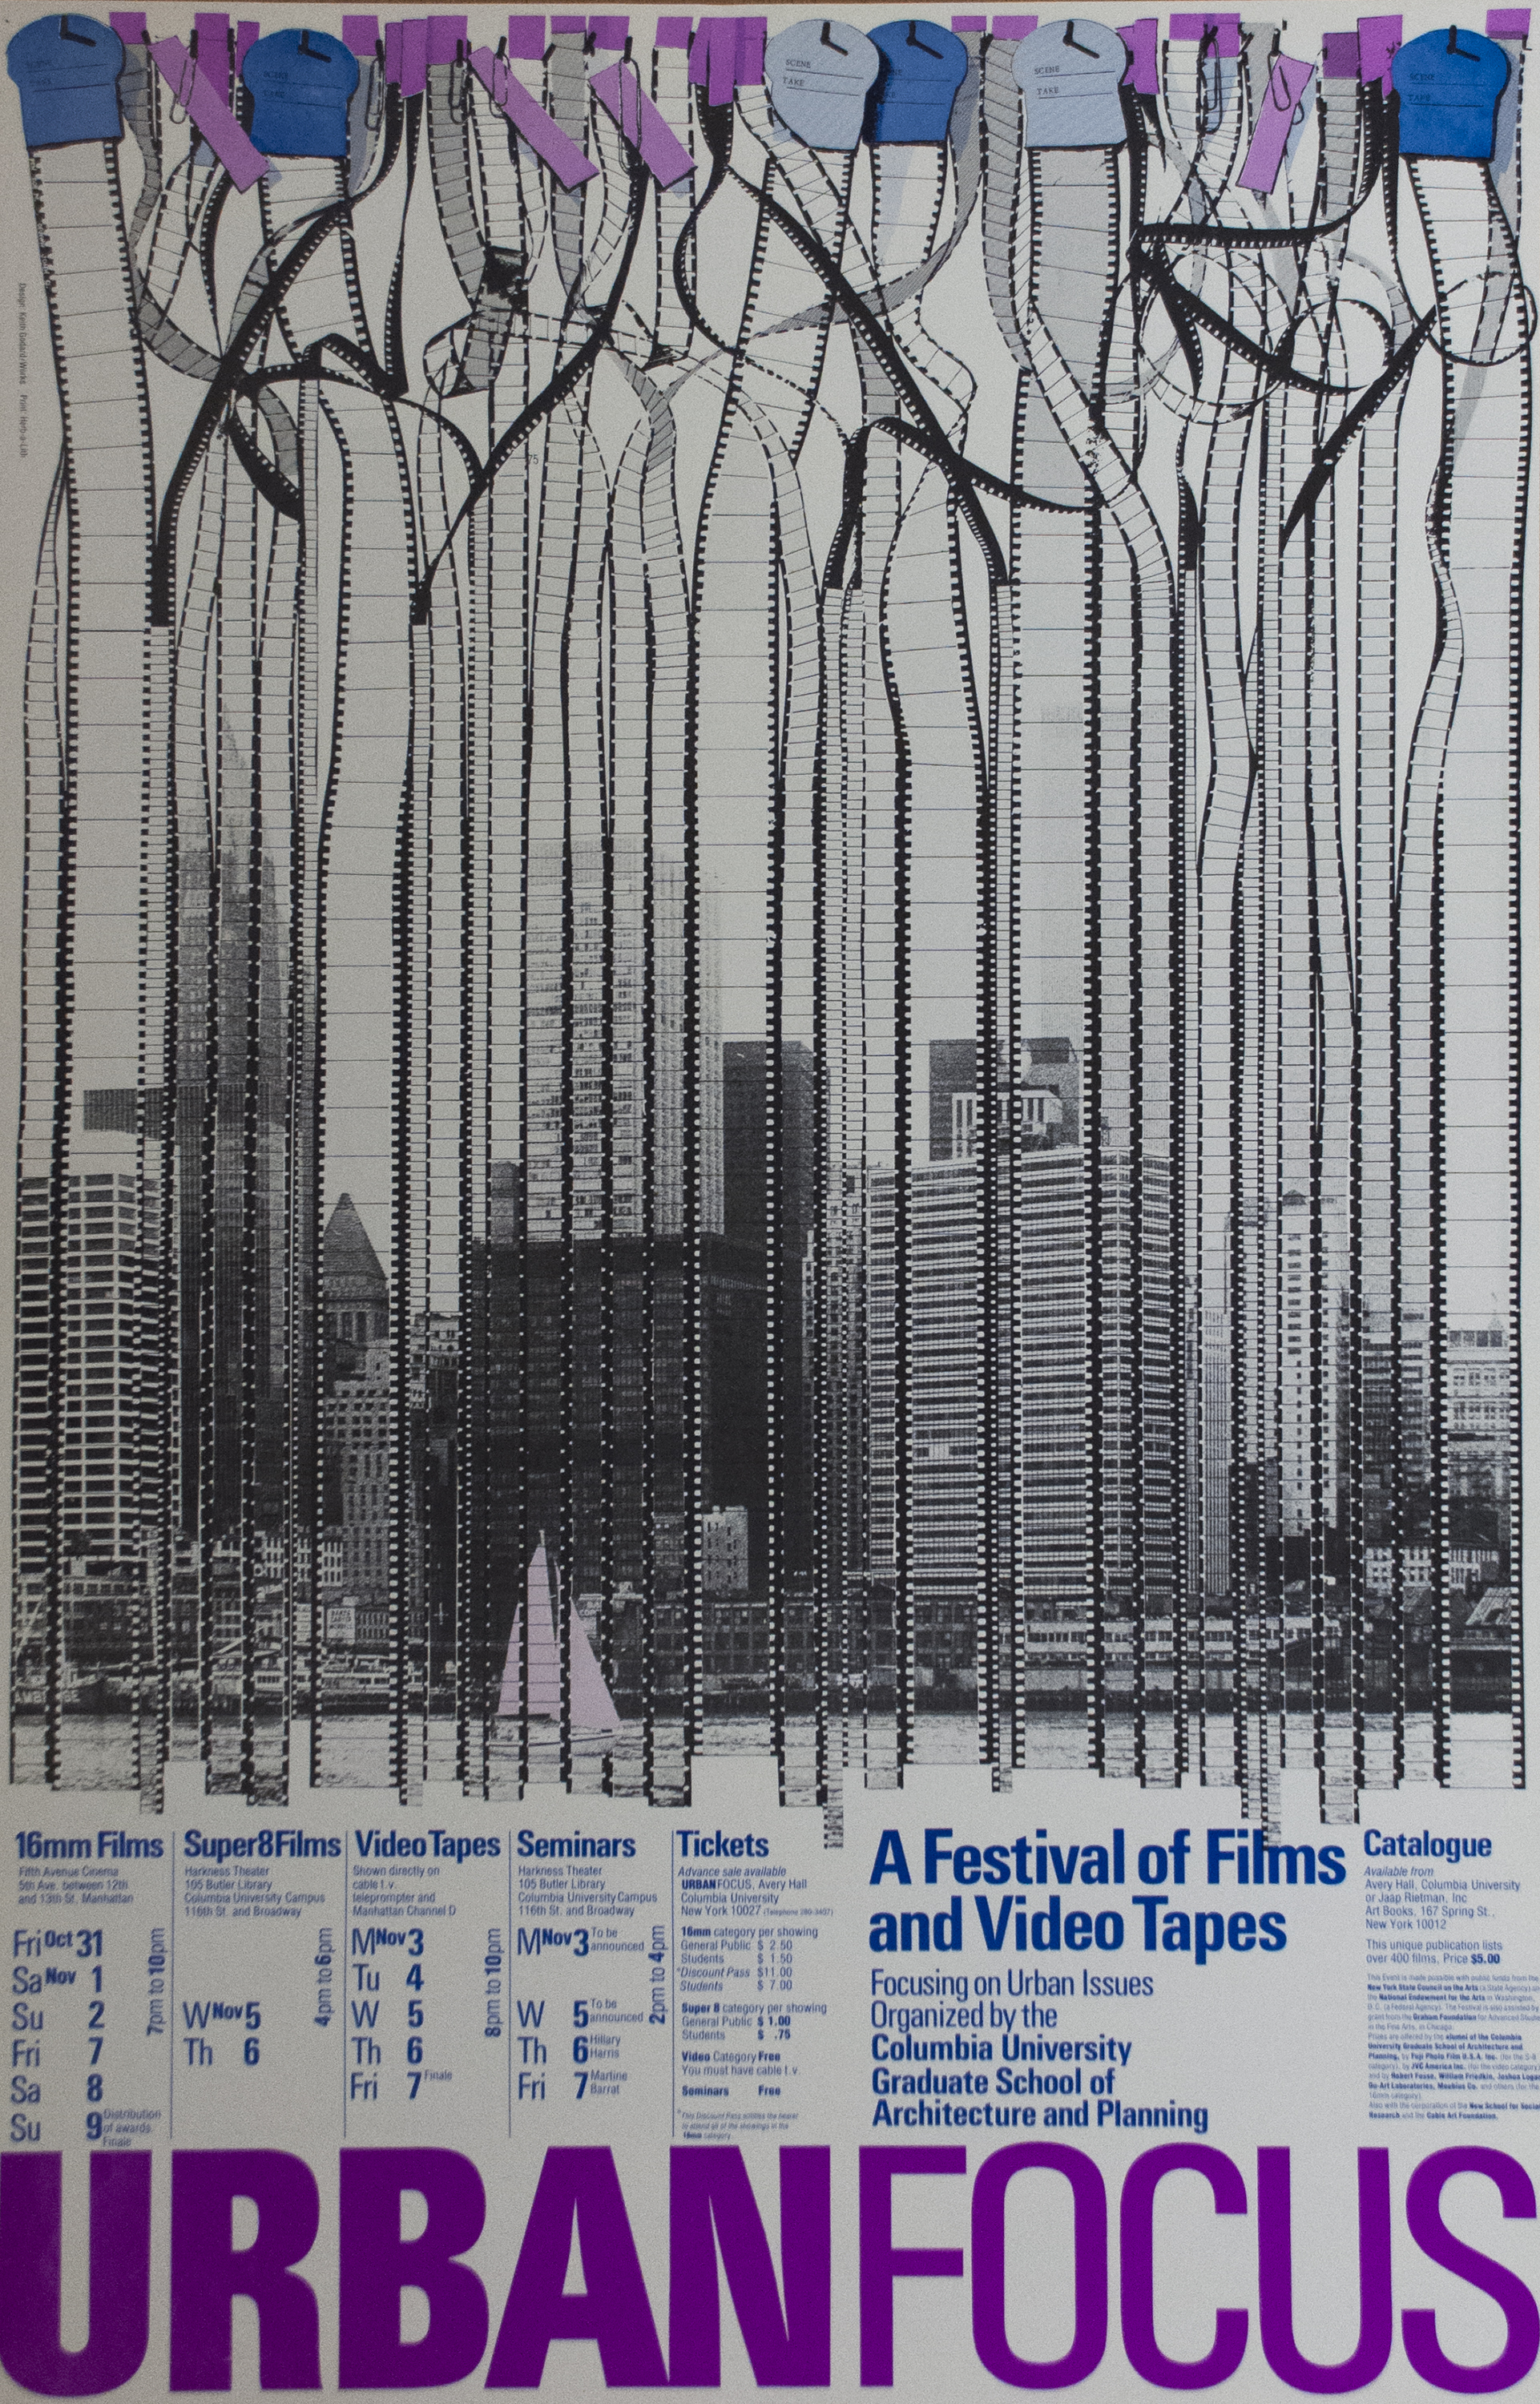 Several strips of 8mm, 16mm, and 32mm film hanging side by side, their combined images forming a cityscape in black and white, with festival information in blue and purple text below.